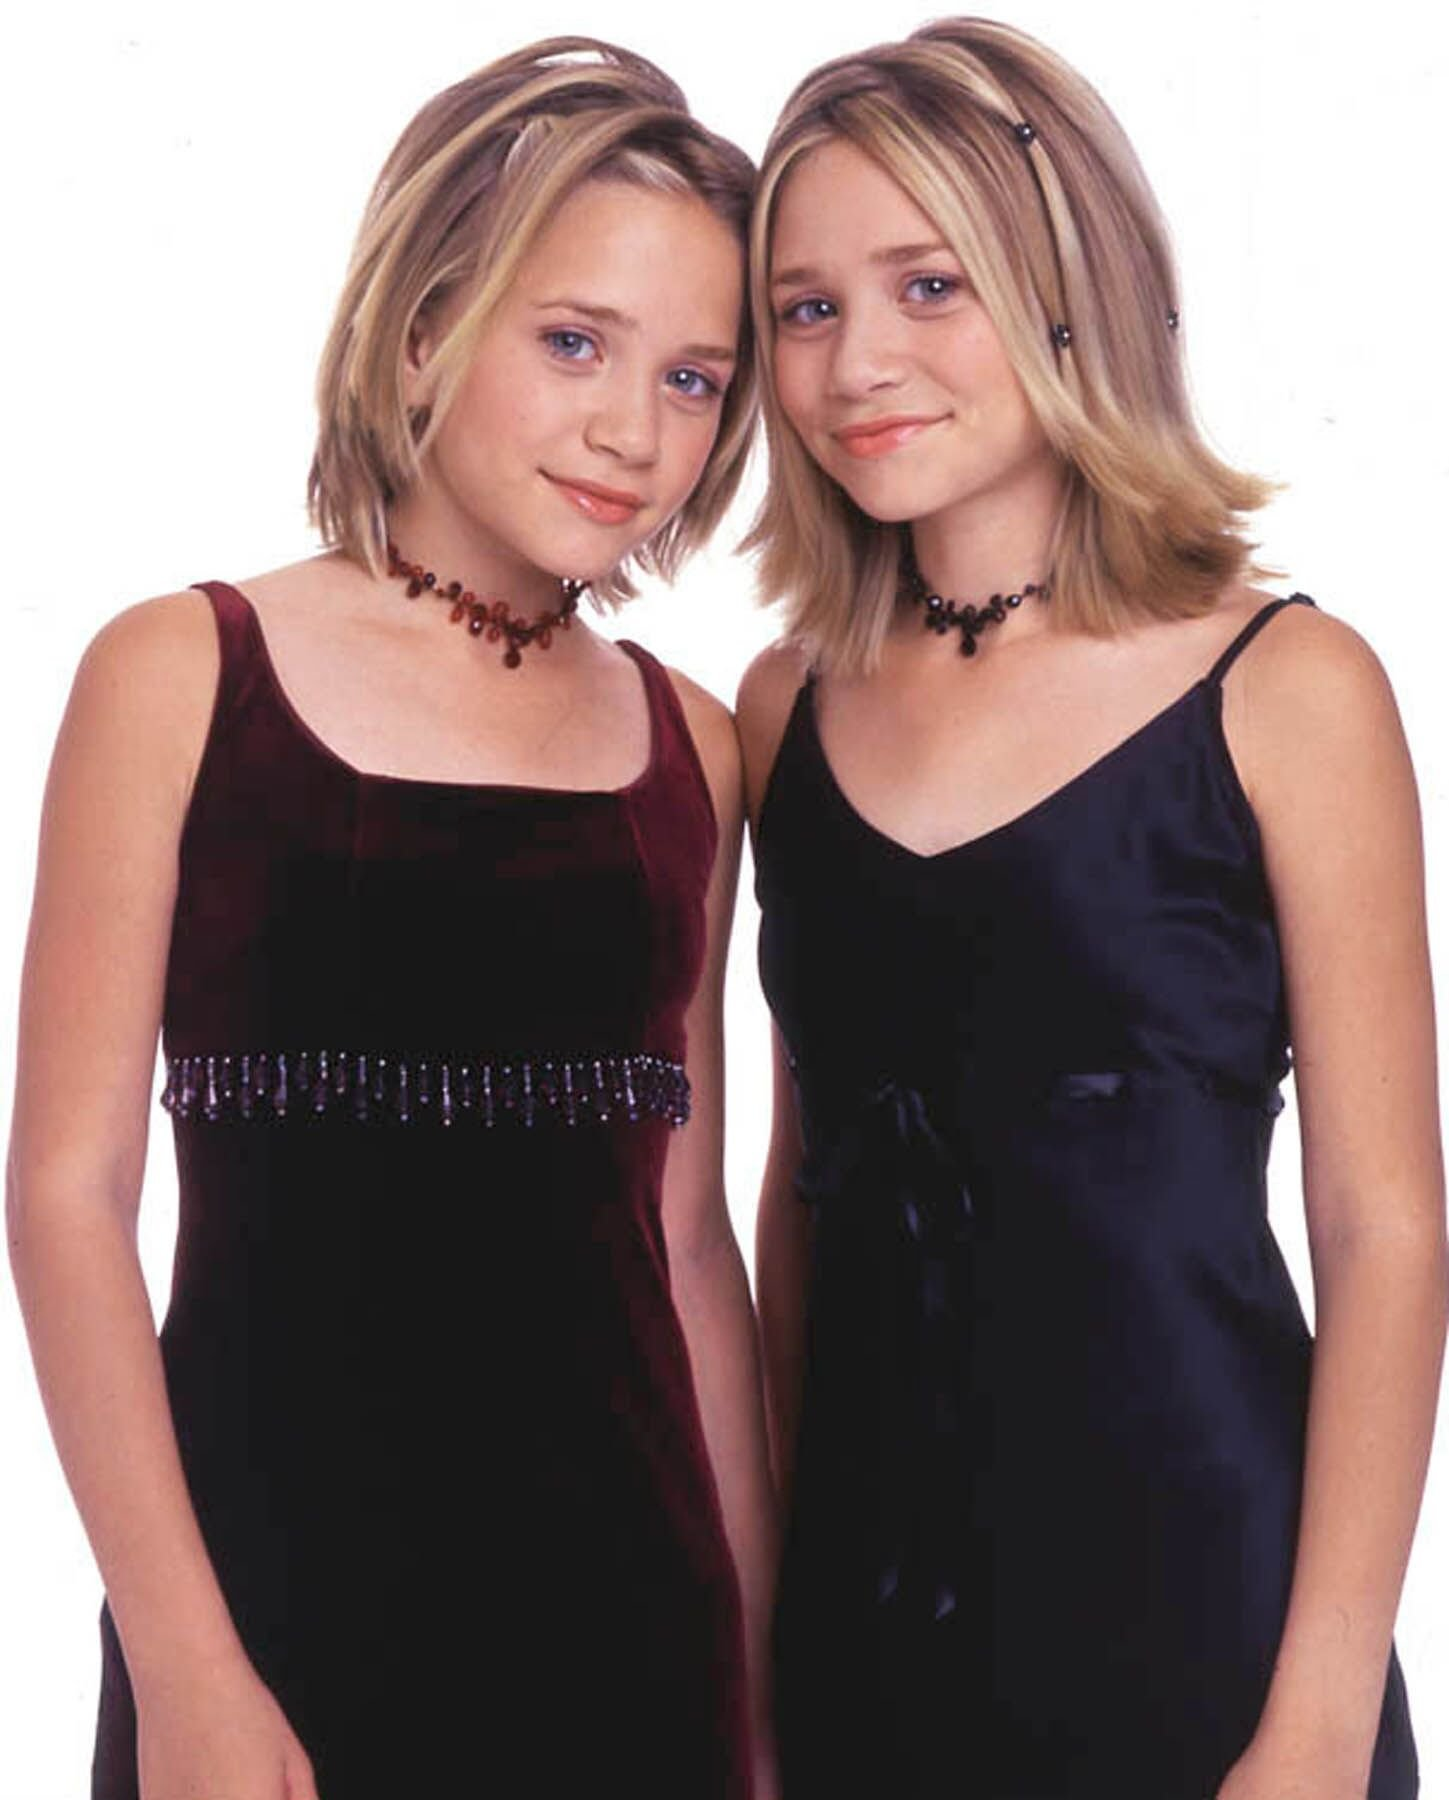 Identical twin actresses Mary-Kate and Ashley Olsen in 2000 | Source: Getty Images